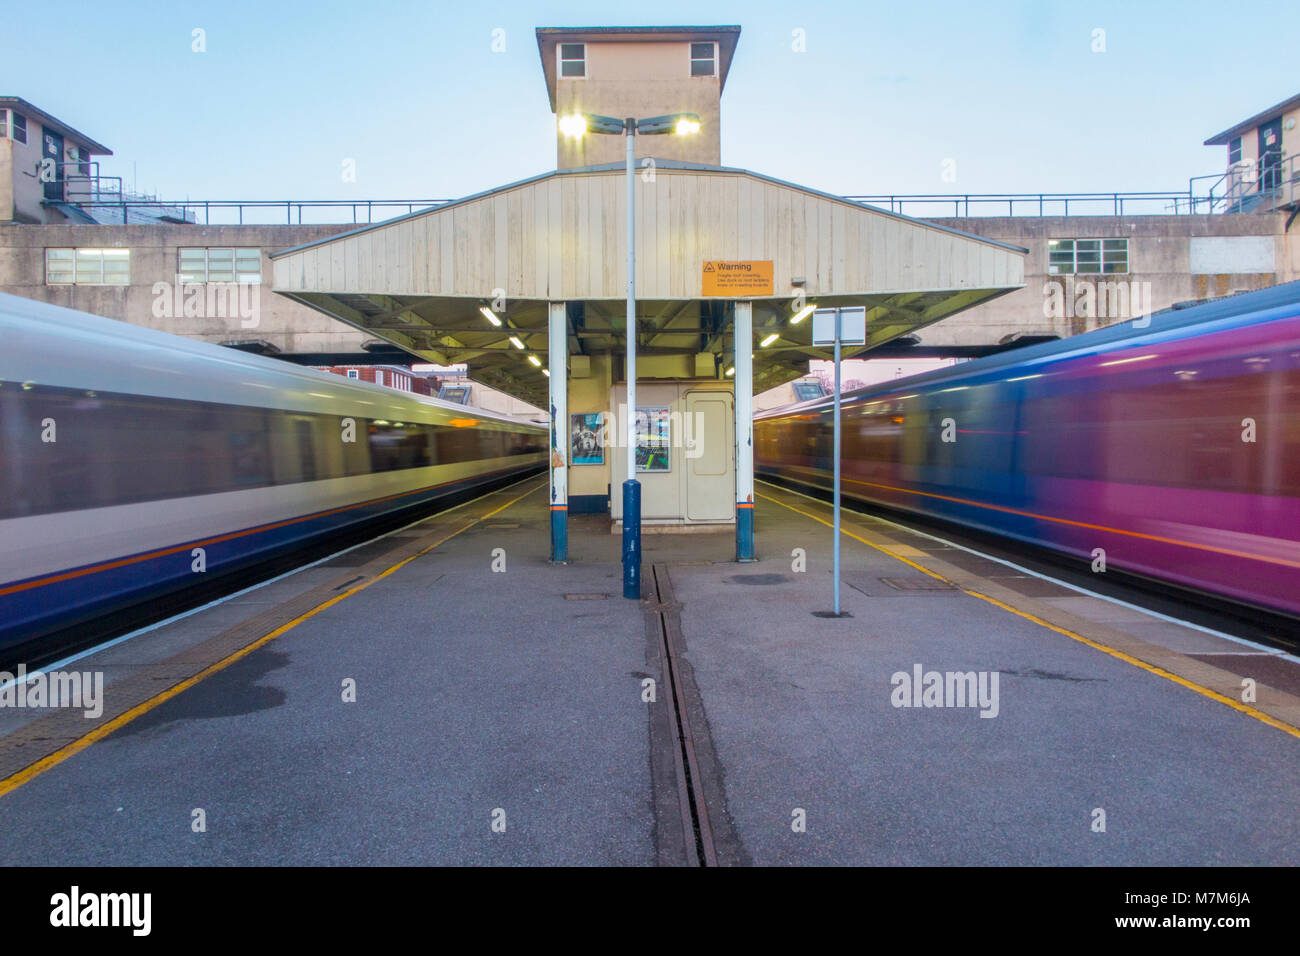 Woking station in Surrey with trains storming past the platforms on their way to and from London - Stock Image